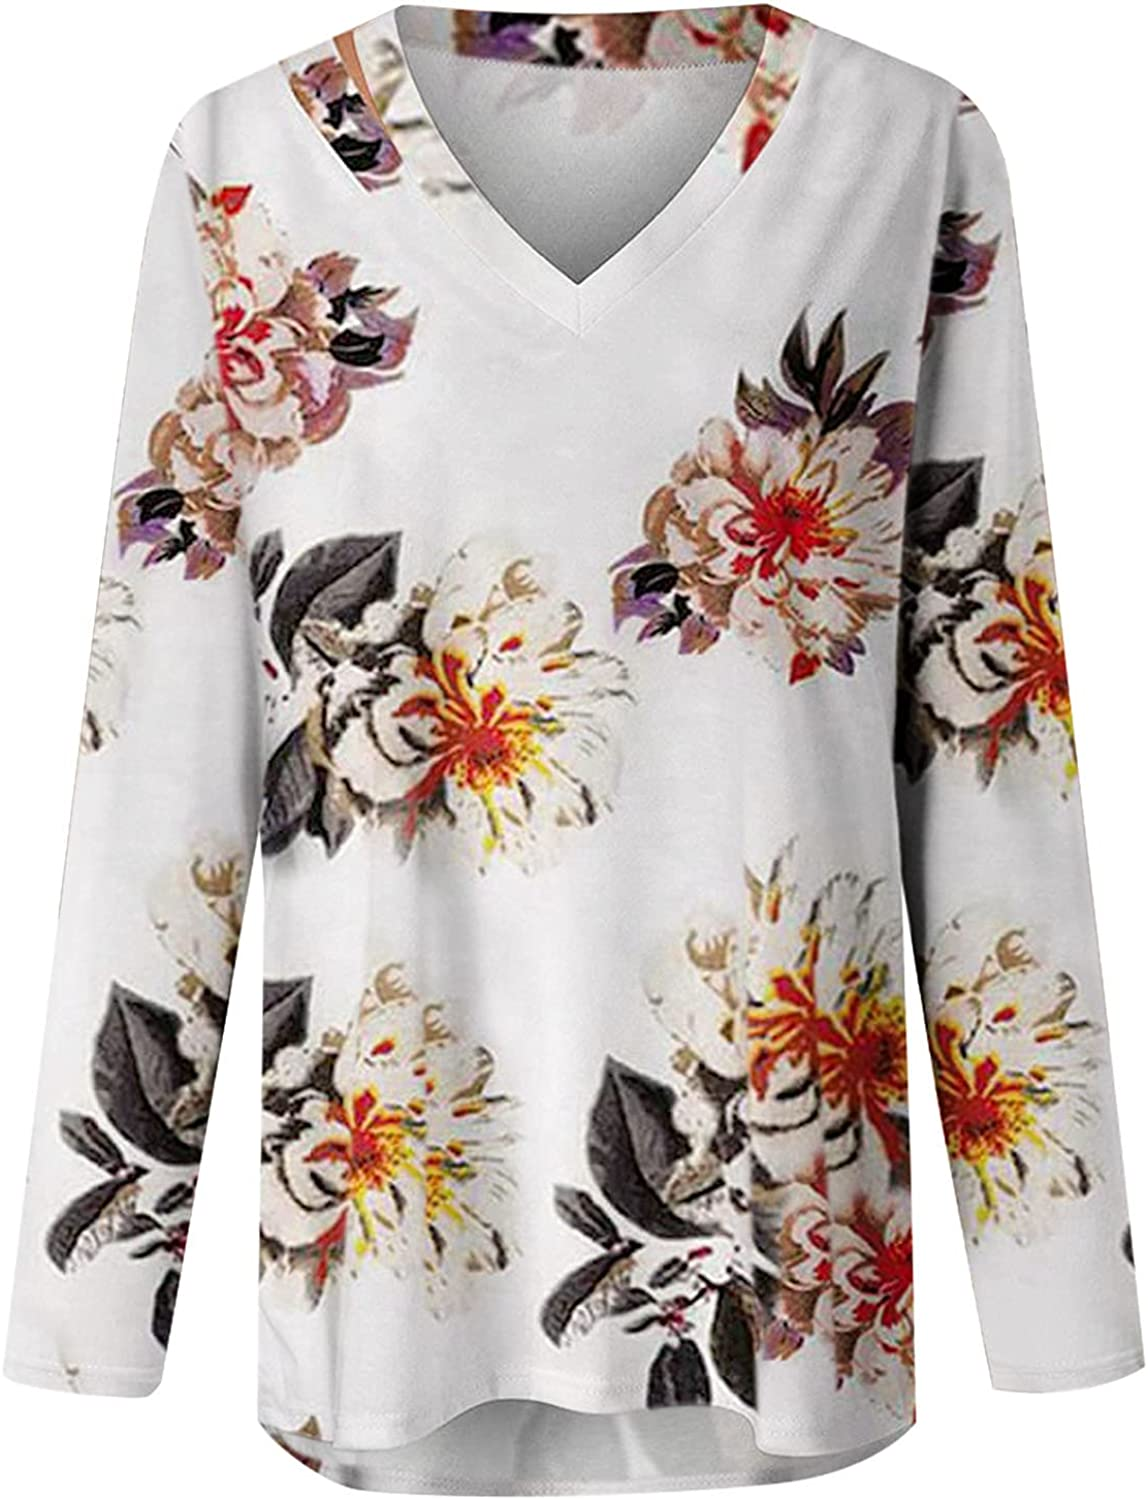 AODONG Long Sleeve Shirts for Women, Womens Casual V Neck Floral Print Shirt Blouses Long Sleeve Loose Fit Tunic Tops